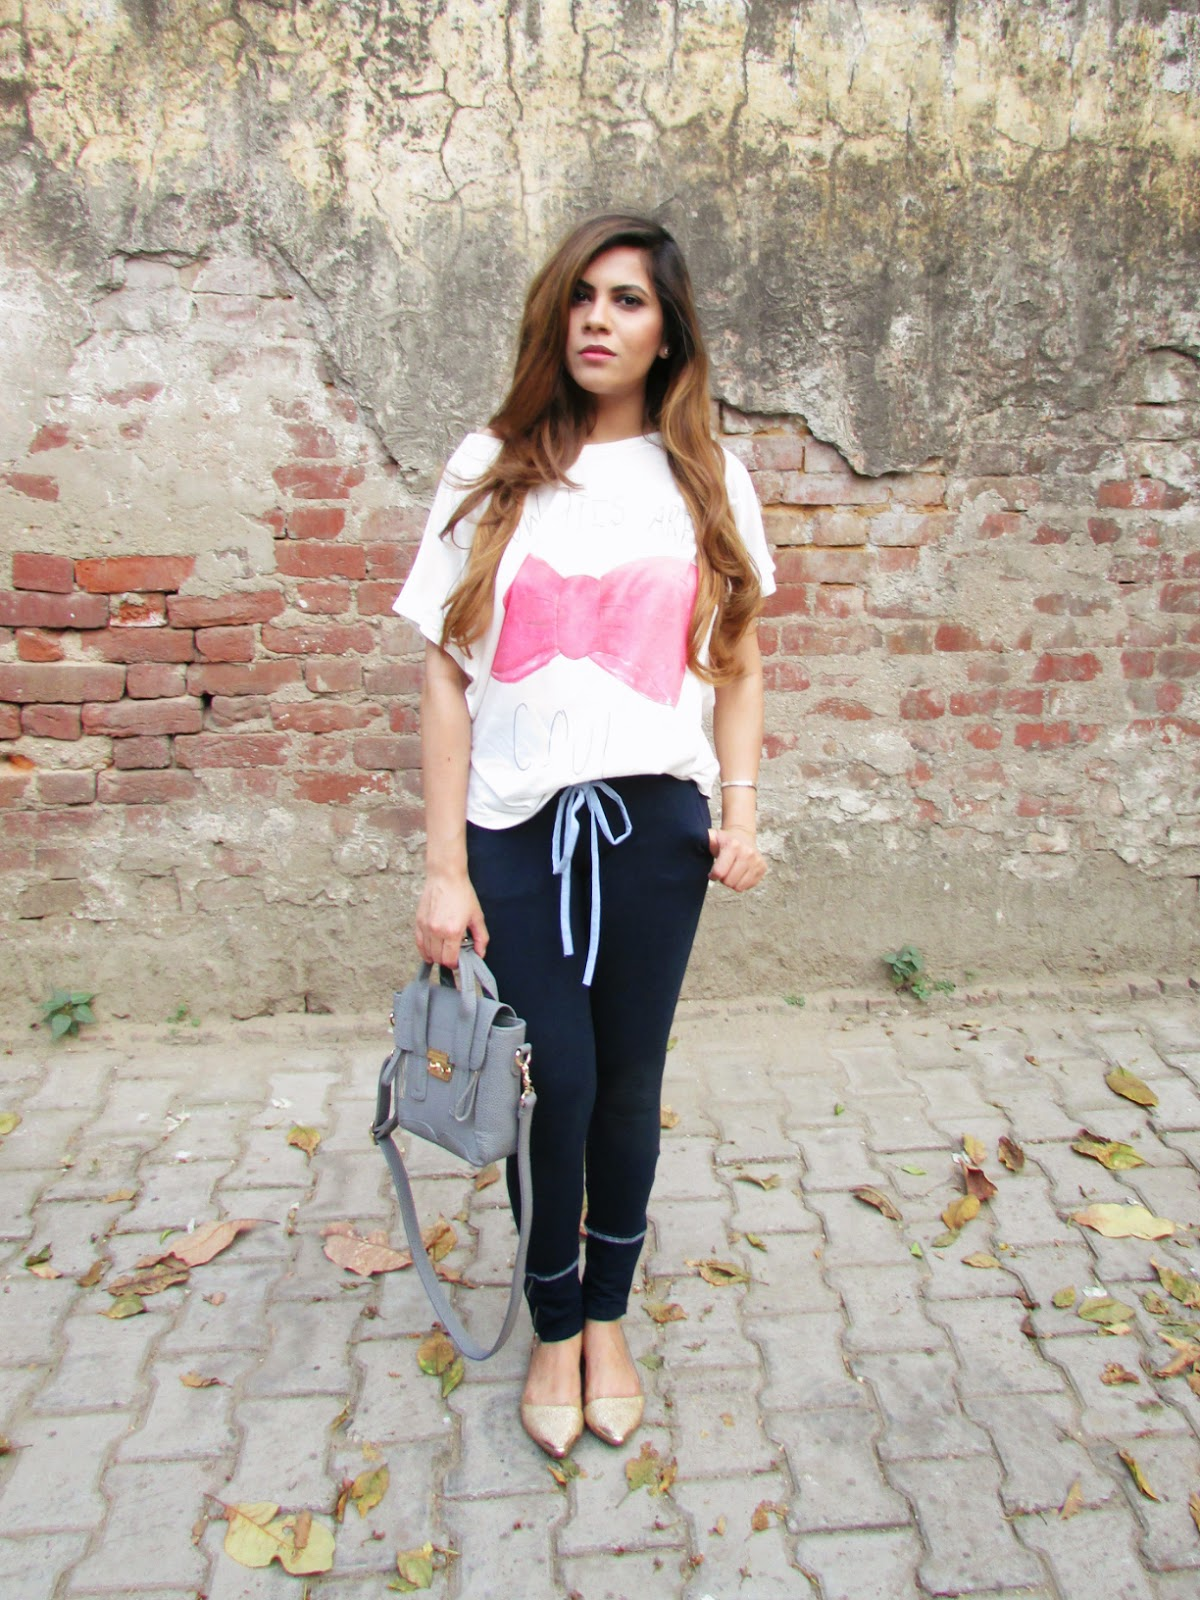 lounge pants, how to style lounge pants, lounge pants india, stalkbuylove, casual chic style outfit, summer trends, indian fashion blogger, latest fashion india online, cheap skinny lounge pants,stalkbuylove india  stalkbuylove coupon code, latest trend clothing india online, lastest fashion online, summer trends 2015, spring trends 2015, summer clothing online, cheap blue lounge pants, how to style lounge pants for day put, lazy day outfit, casual summer outfit, beauty , fashion,beauty and fashion,beauty blog, fashion blog , indian beauty blog,indian fashion blog, beauty and fashion blog, indian beauty and fashion blog, indian bloggers, indian beauty bloggers, indian fashion bloggers,indian bloggers online, top 10 indian bloggers, top indian bloggers,top 10 fashion bloggers, indian bloggers on blogspot,home remedies, how to